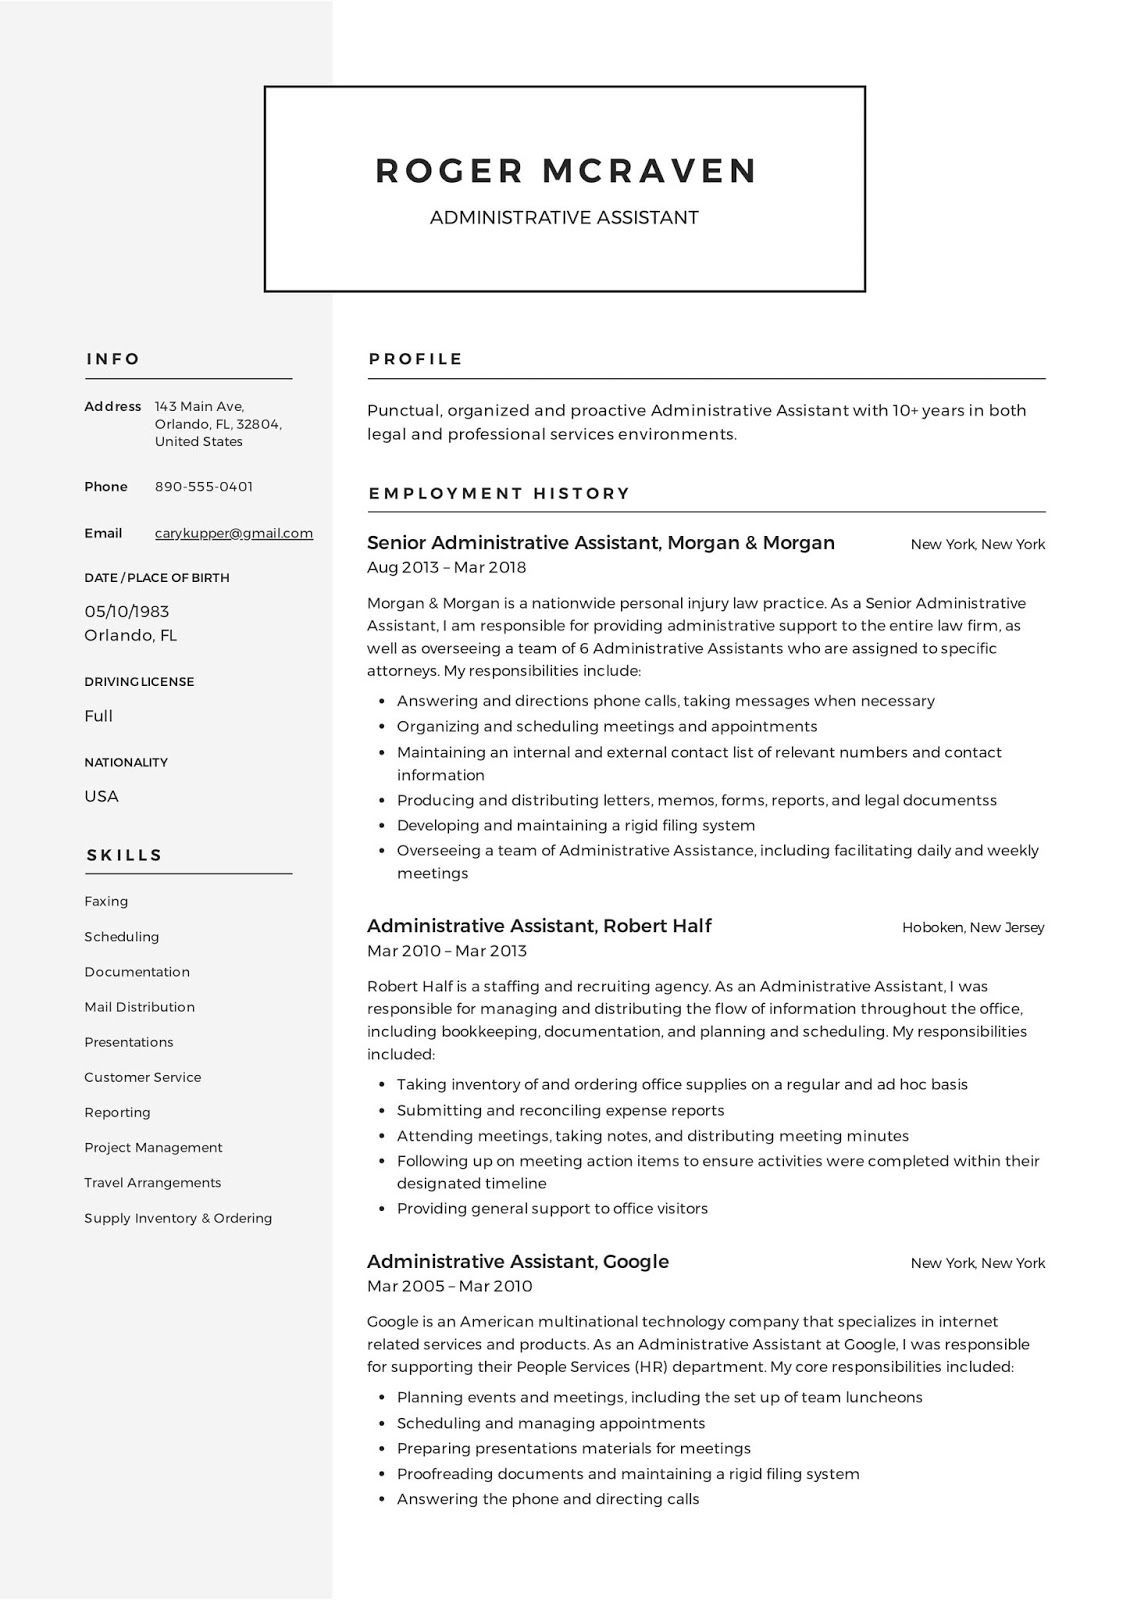 administrative resume template free microsoft word assistant event planner office manager Resume Free Administrative Assistant Resume Templates